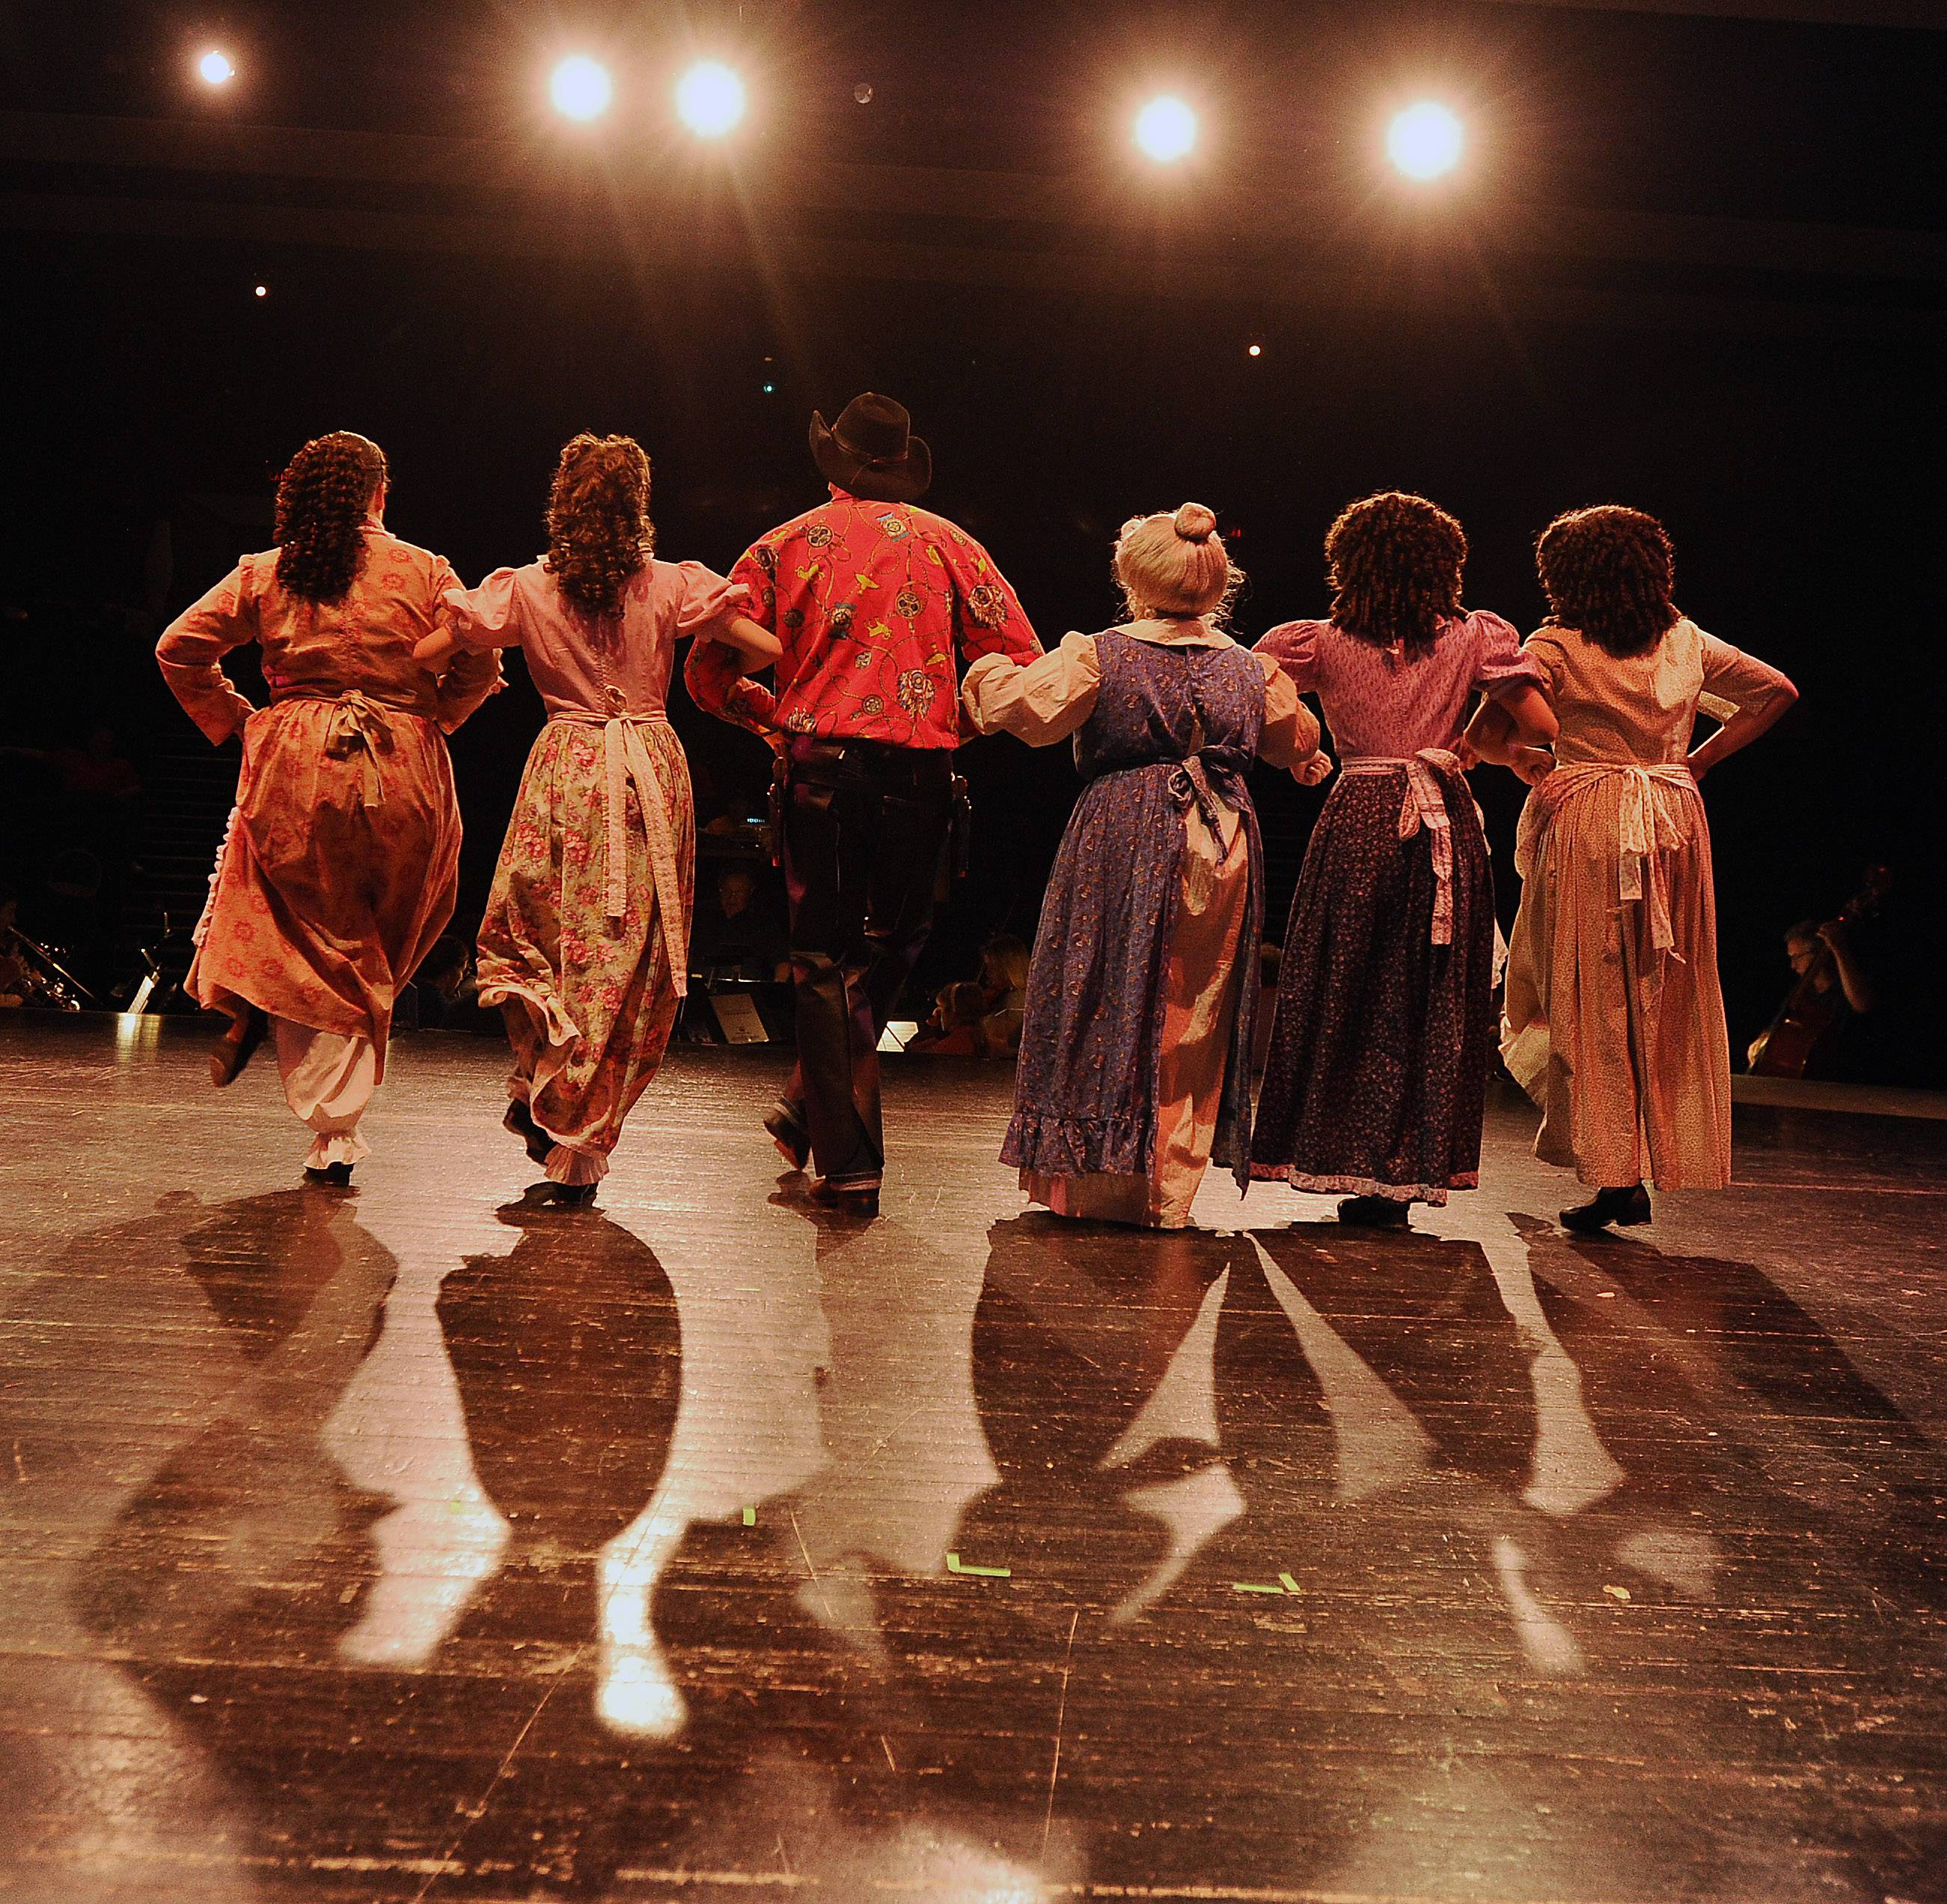 The cast from H.O.T.T. Productions is producing Oklahoma at the Prairie Center for the Arts in Schaumburg to raise money for families in need.